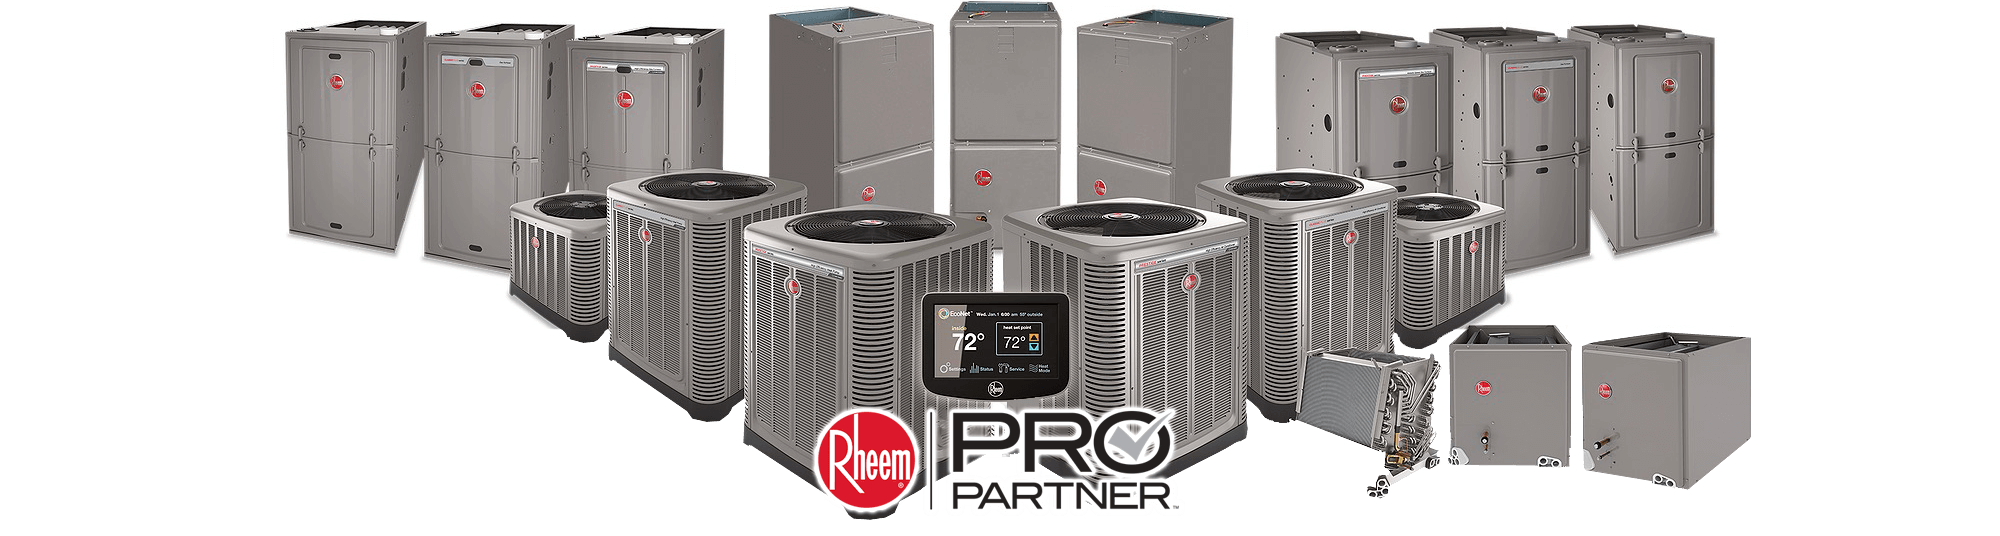 Rheem Heat Pump service in Herndon VA is our speciality.